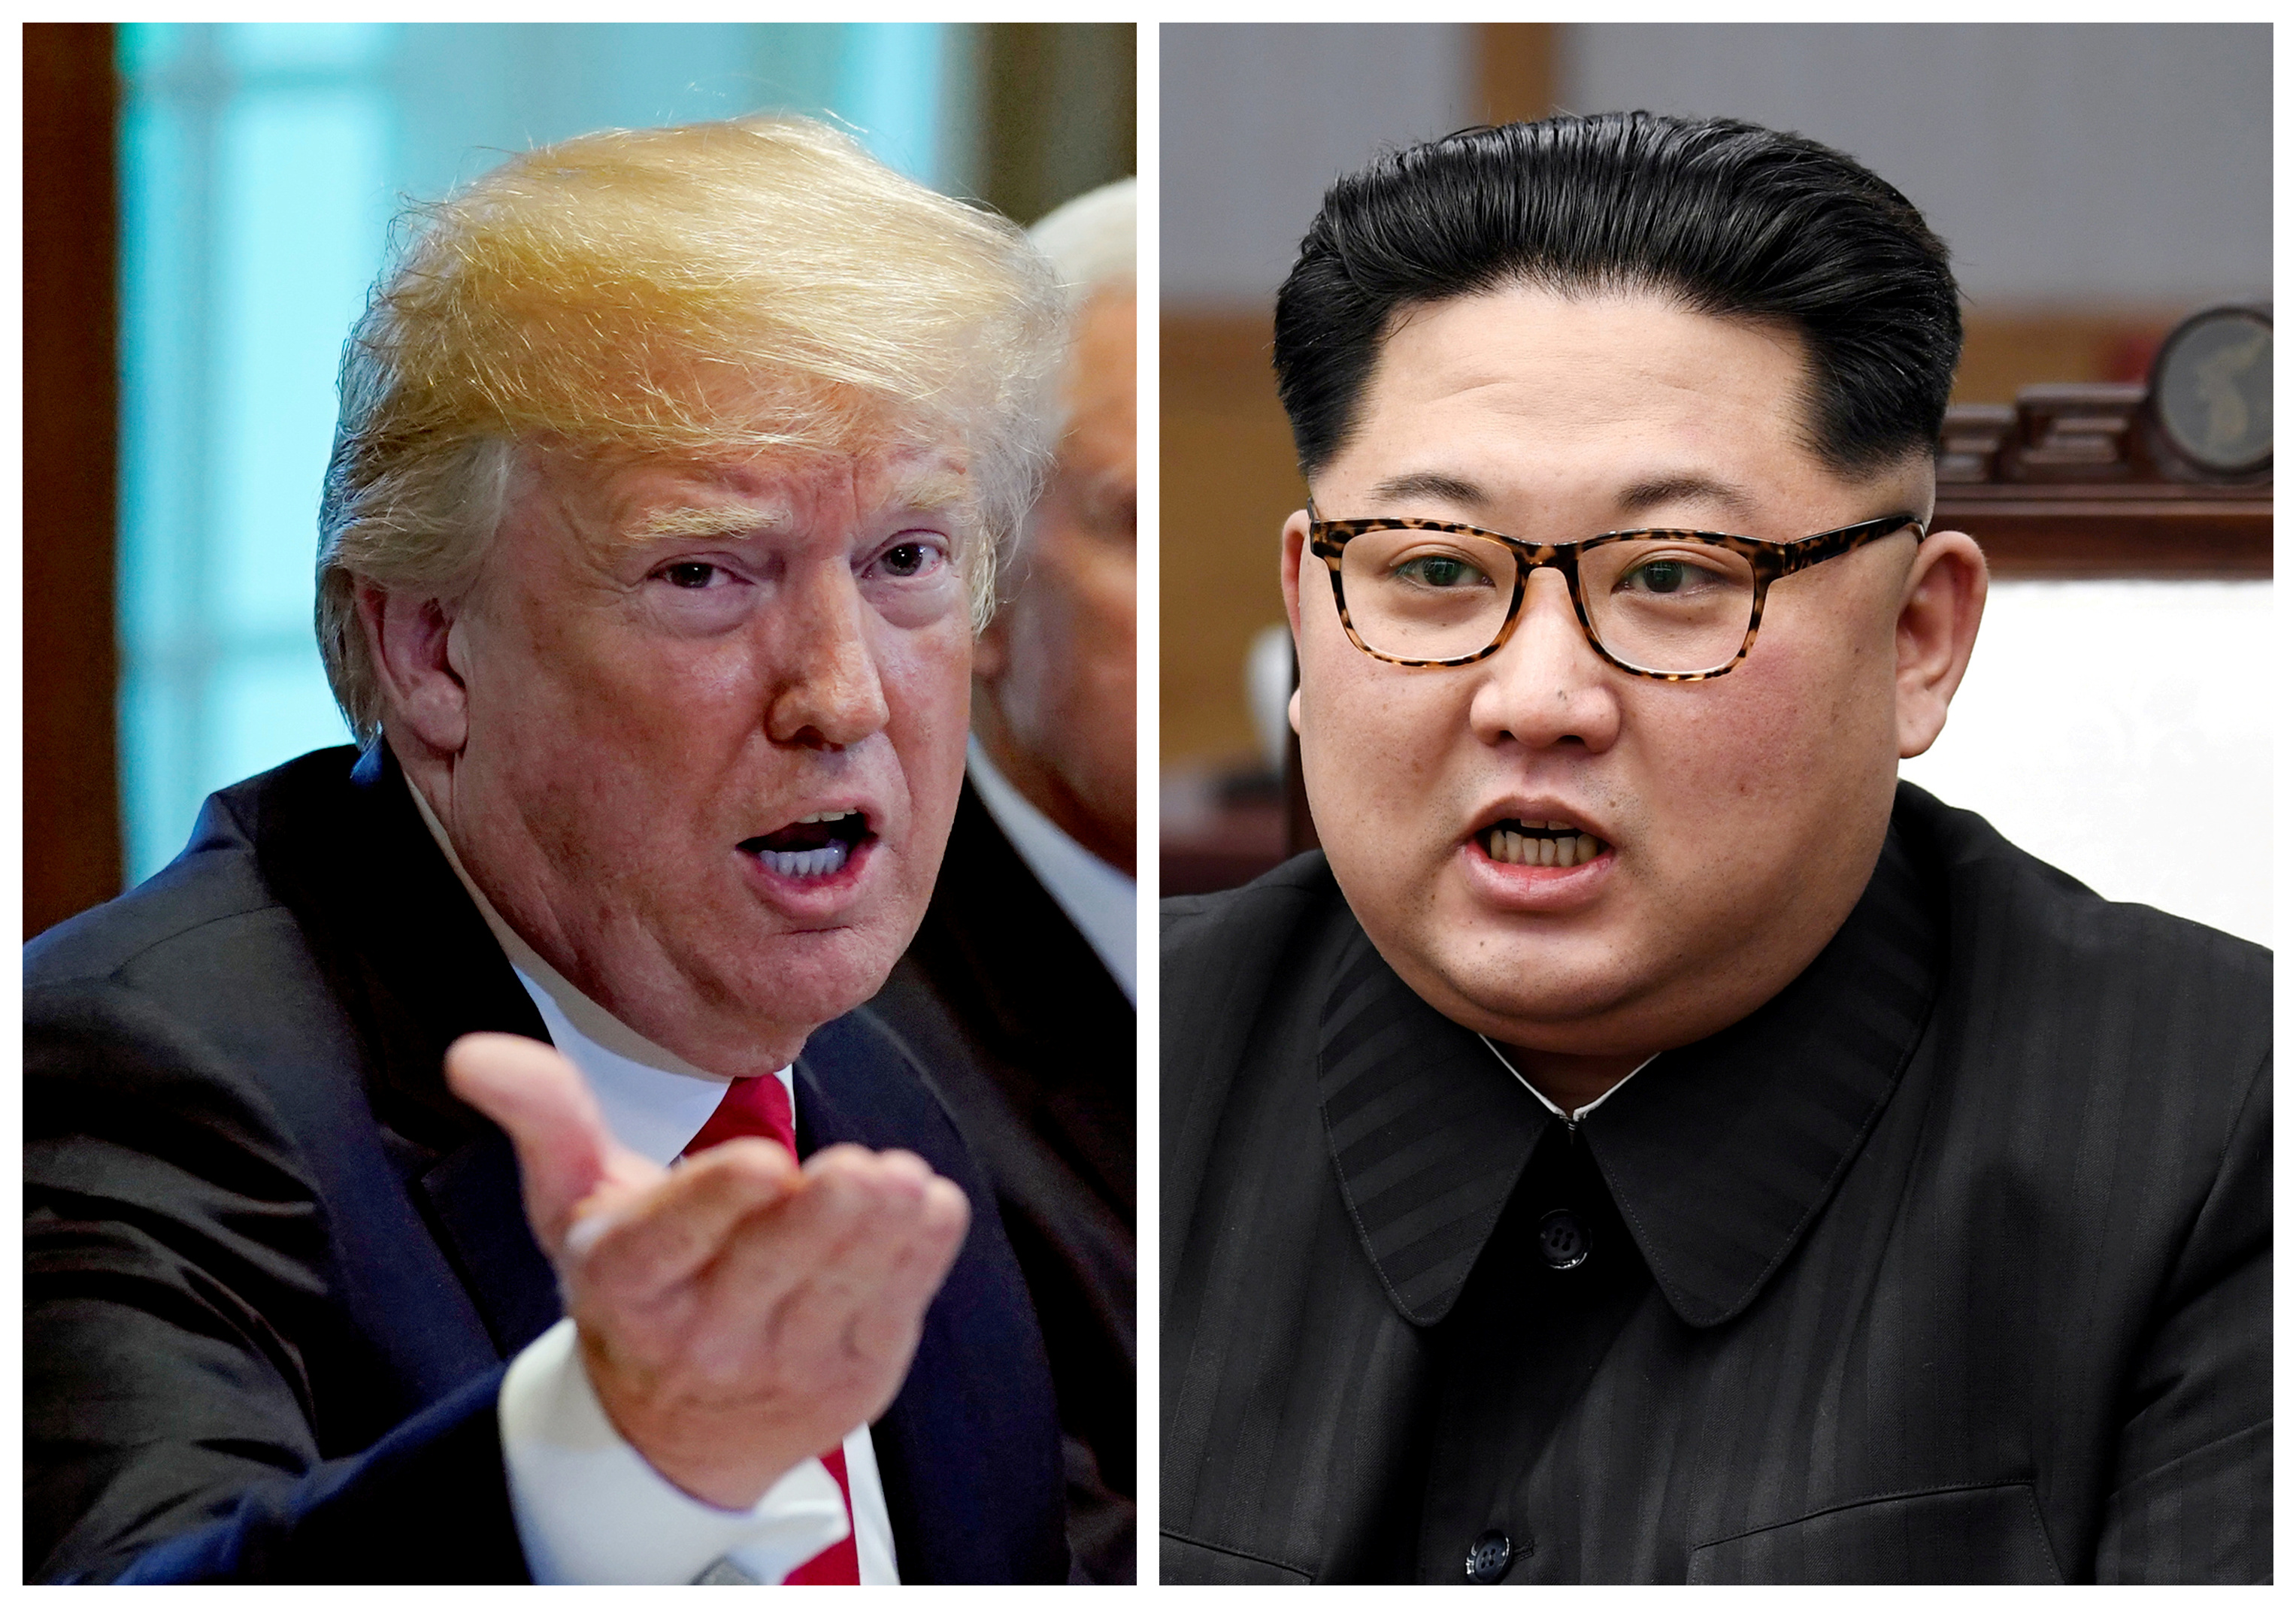 A combination photo shows President Donald Trump and North Korean leader Kim Jong Un in Washington, DC, May 17, 2018 and in Panmunjom, South Korea, April 27, 2018 respectively.